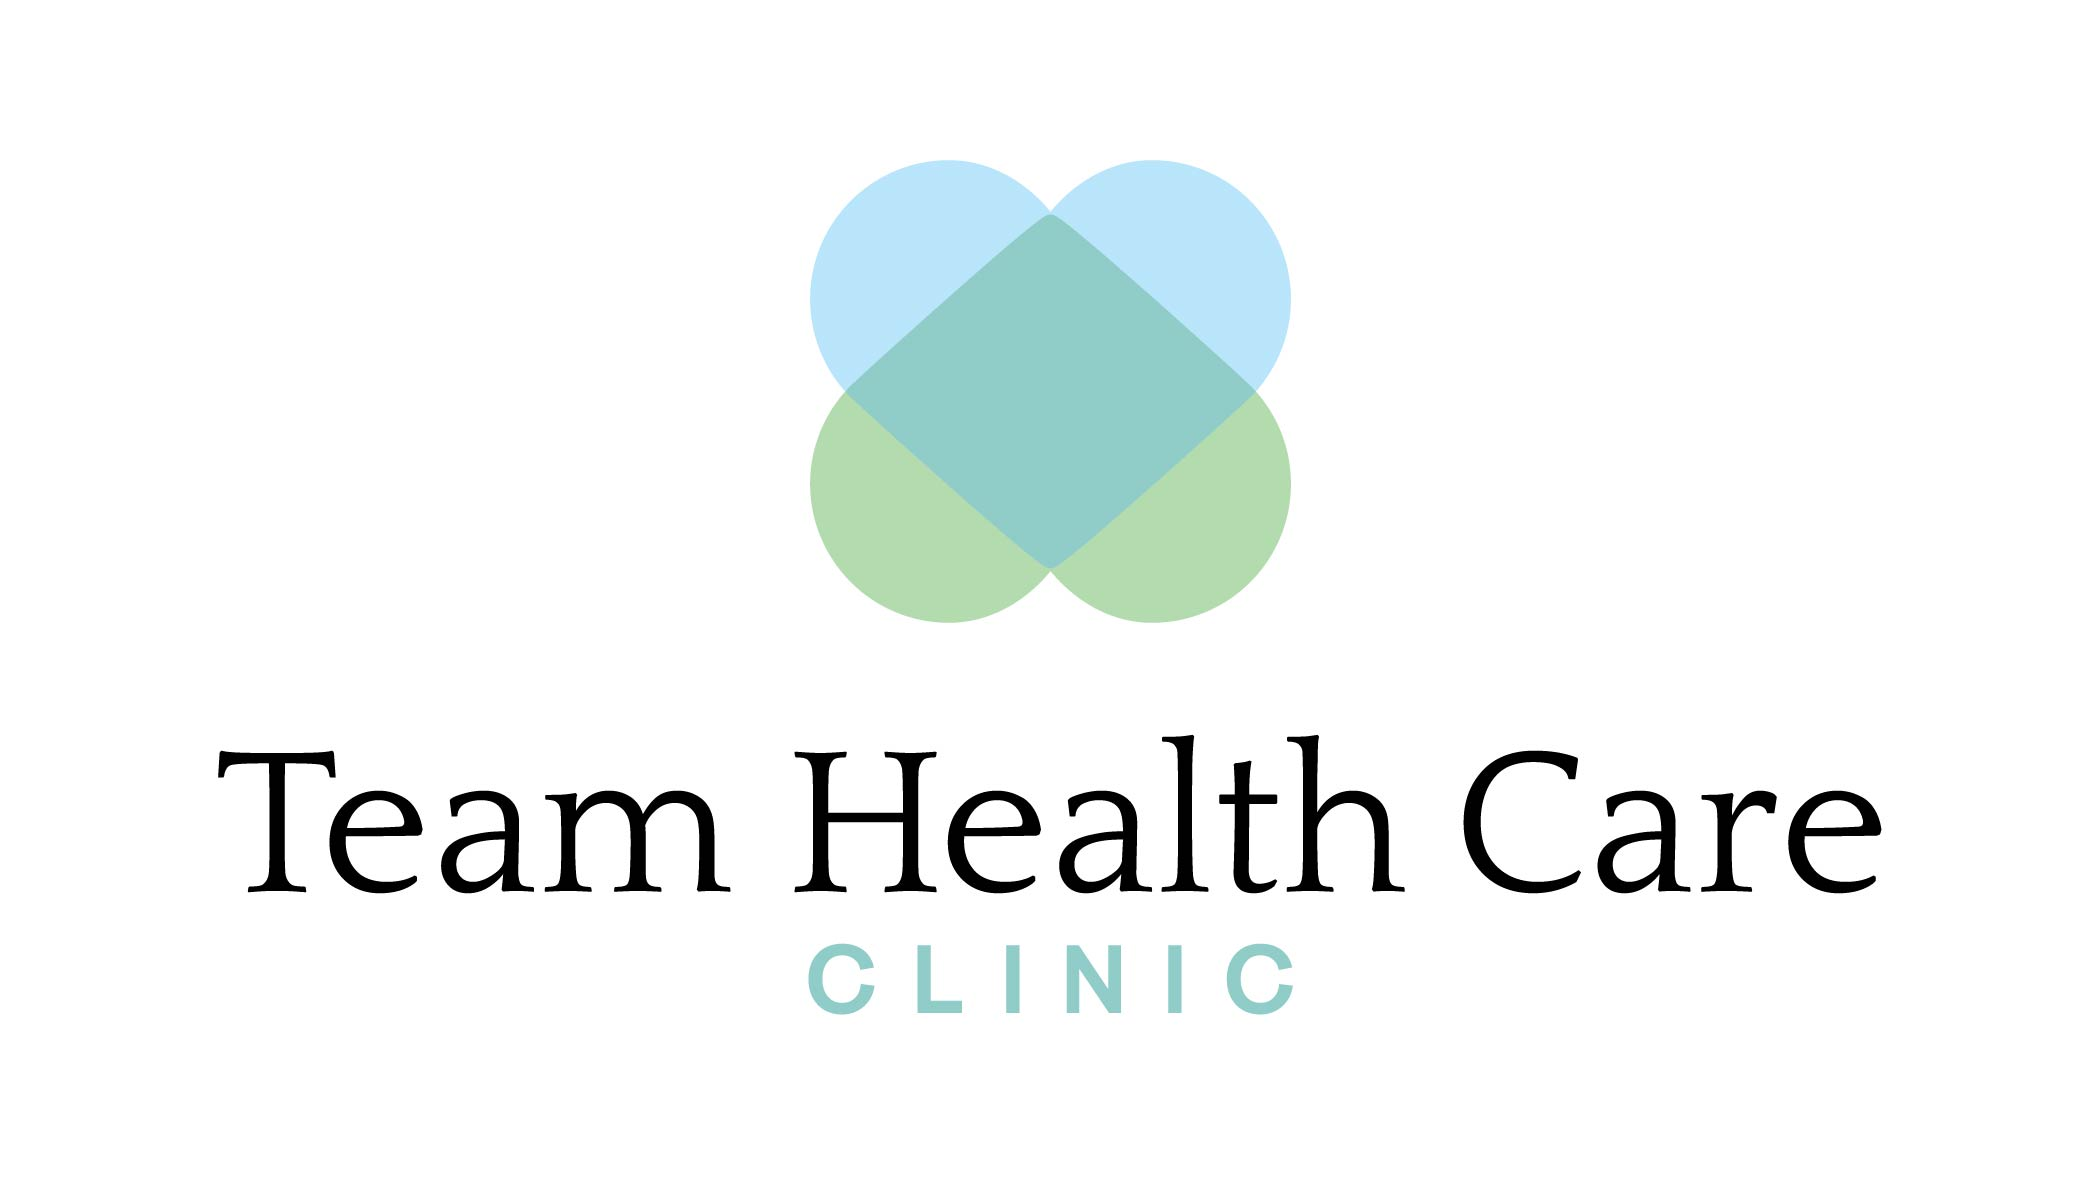 Team Health Care Clinic